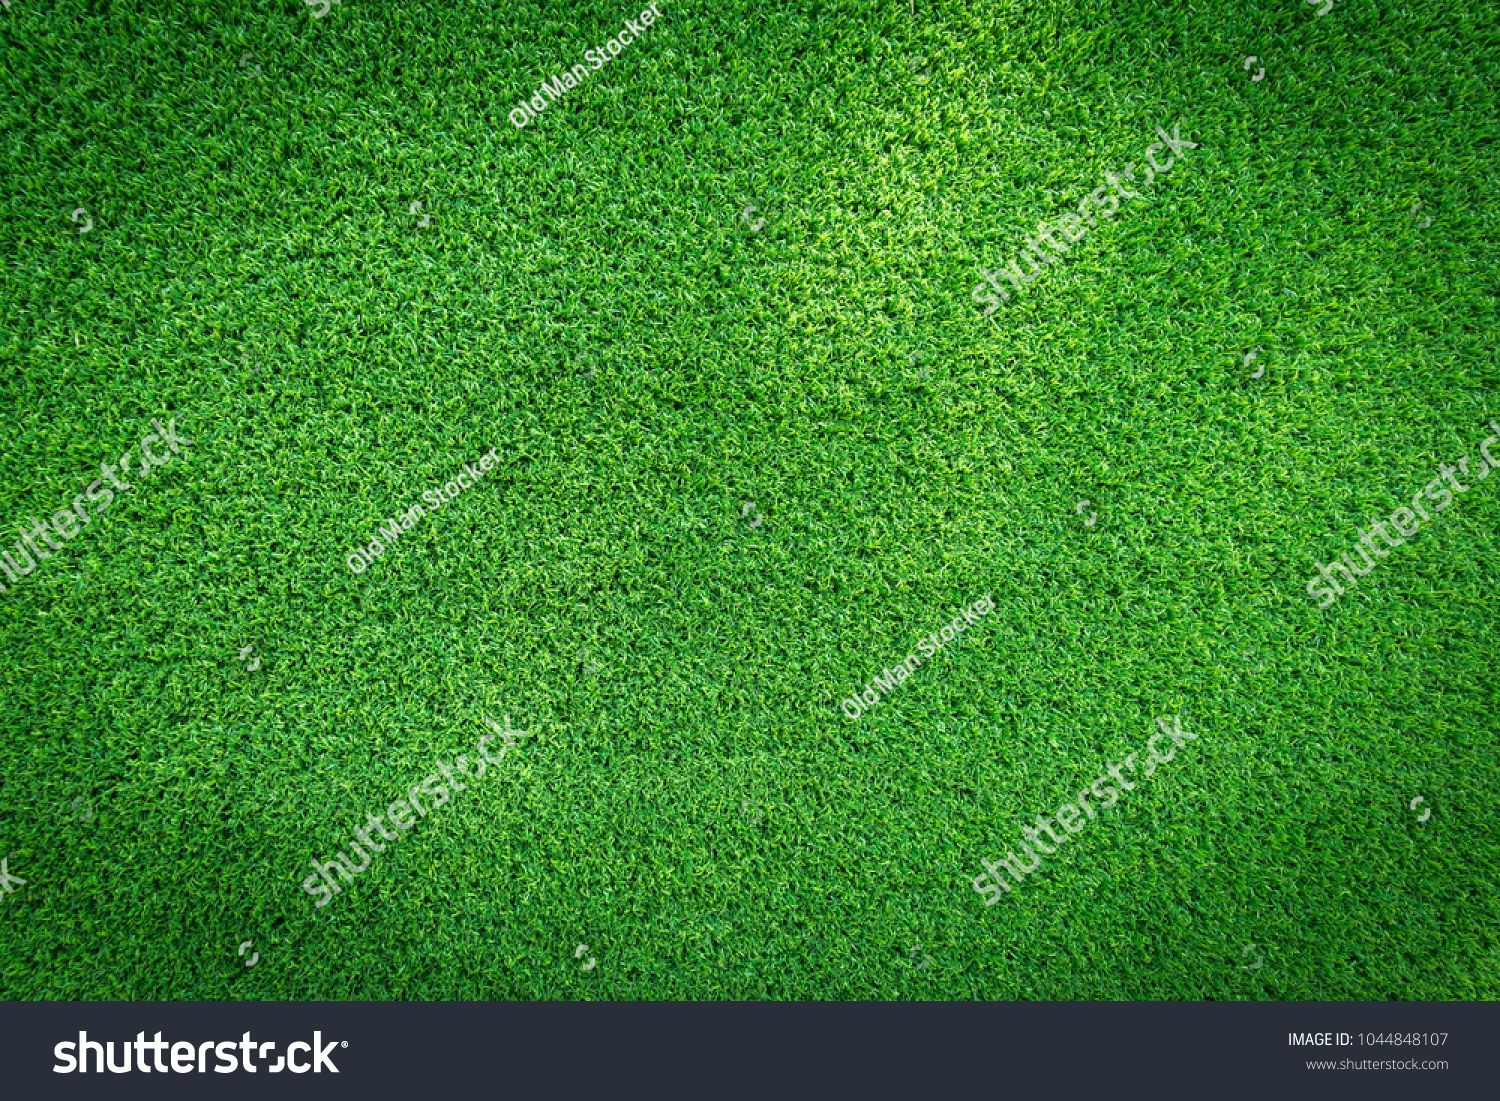 Grass Field Texture For Golf Course Soccer Field Or Sports Background Concept Design Artificial Grass Grass Background Green Grass Background Grass Textures